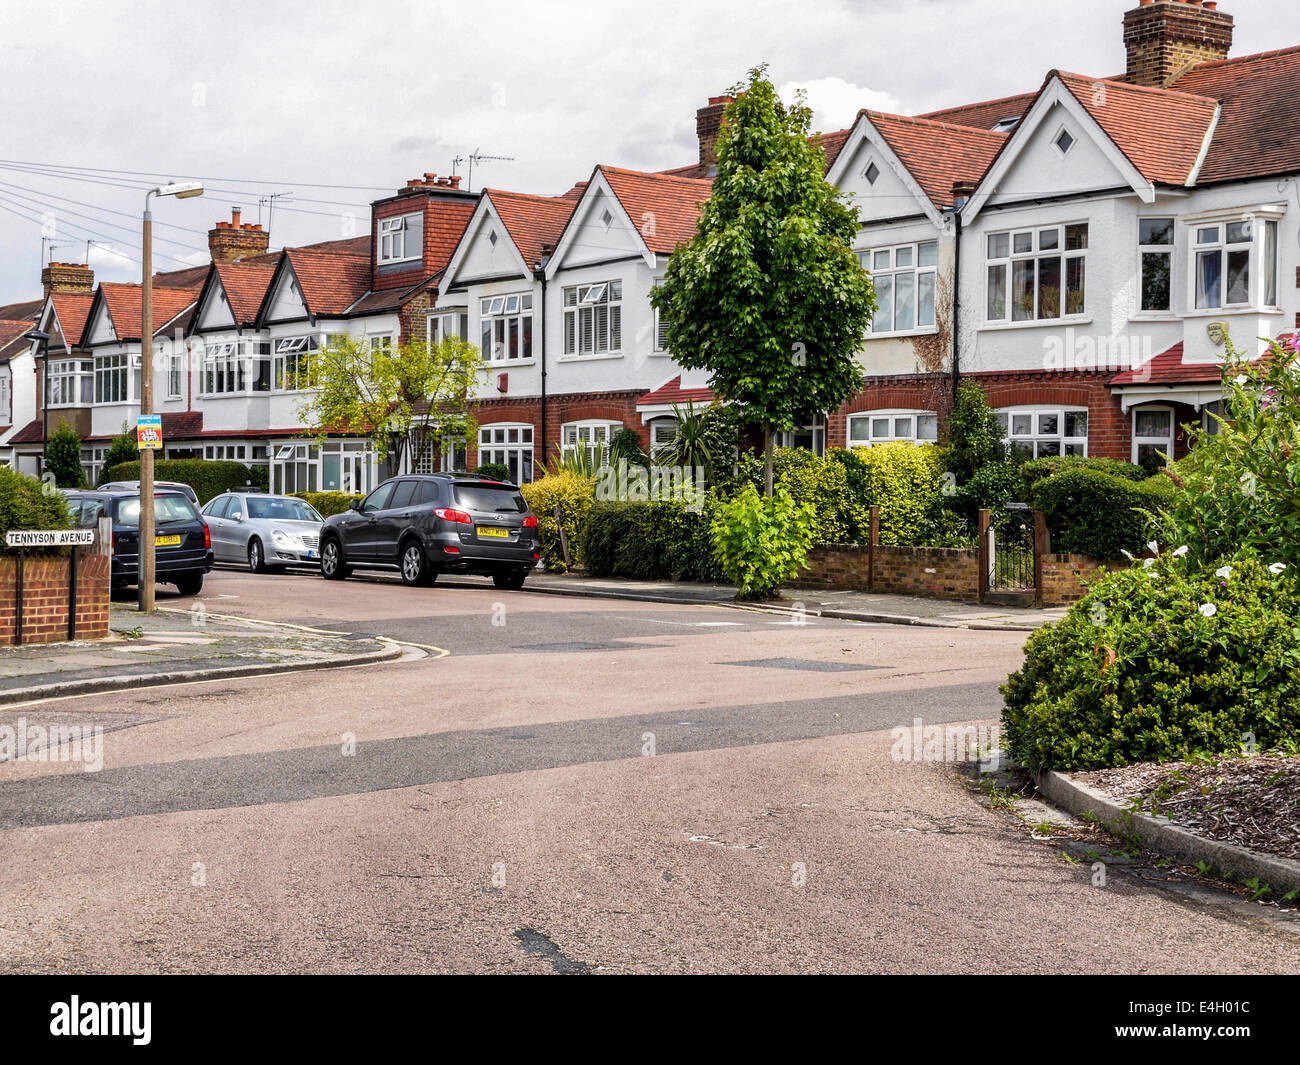 Typical terraced houses in suburb of Twickenham, Greater London, UK - Stock Image